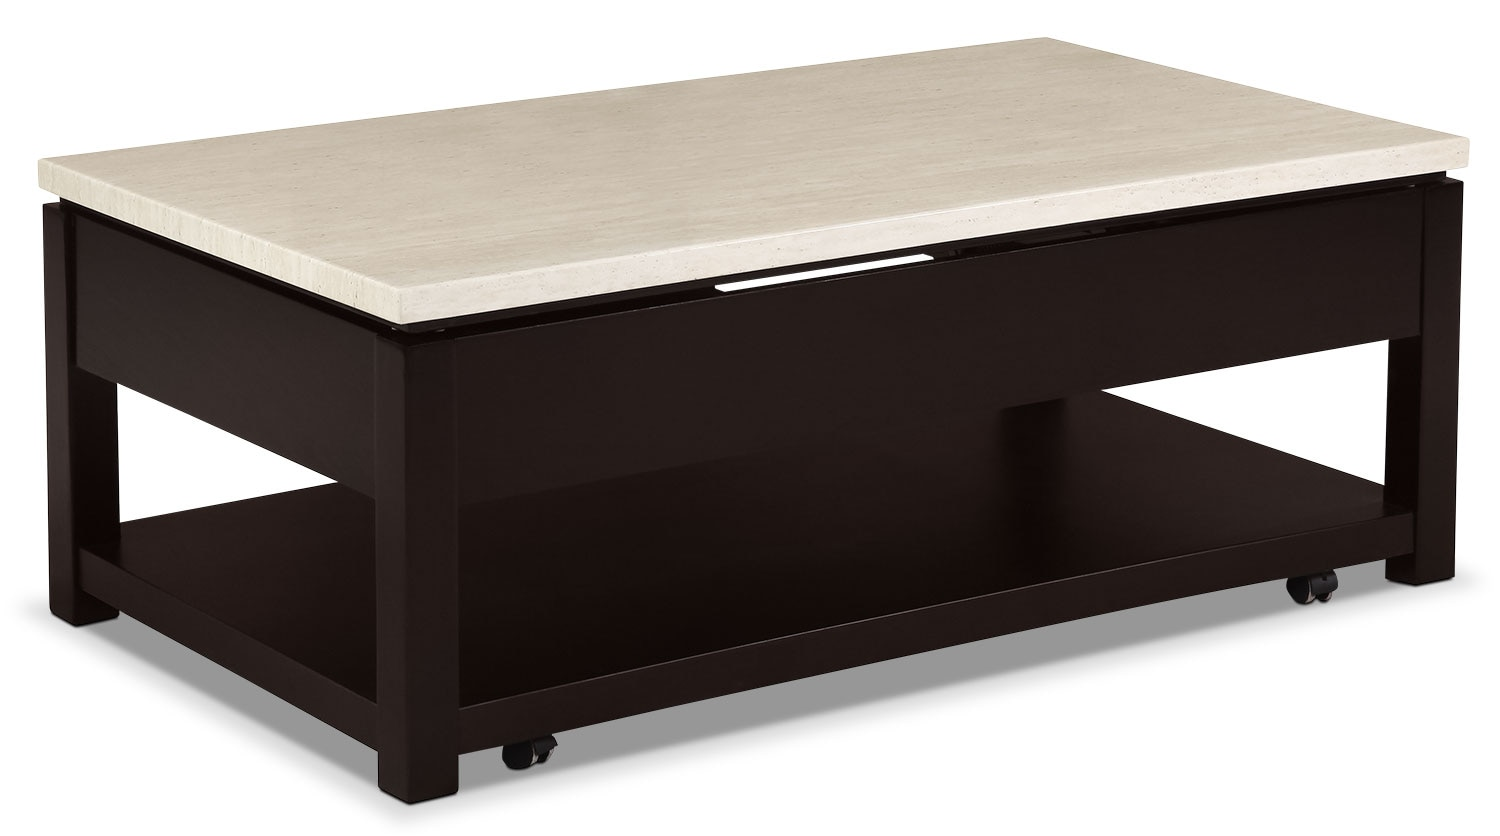 Accent and Occasional Furniture - Sicily Coffee Table with Lift-Top and Casters – Black